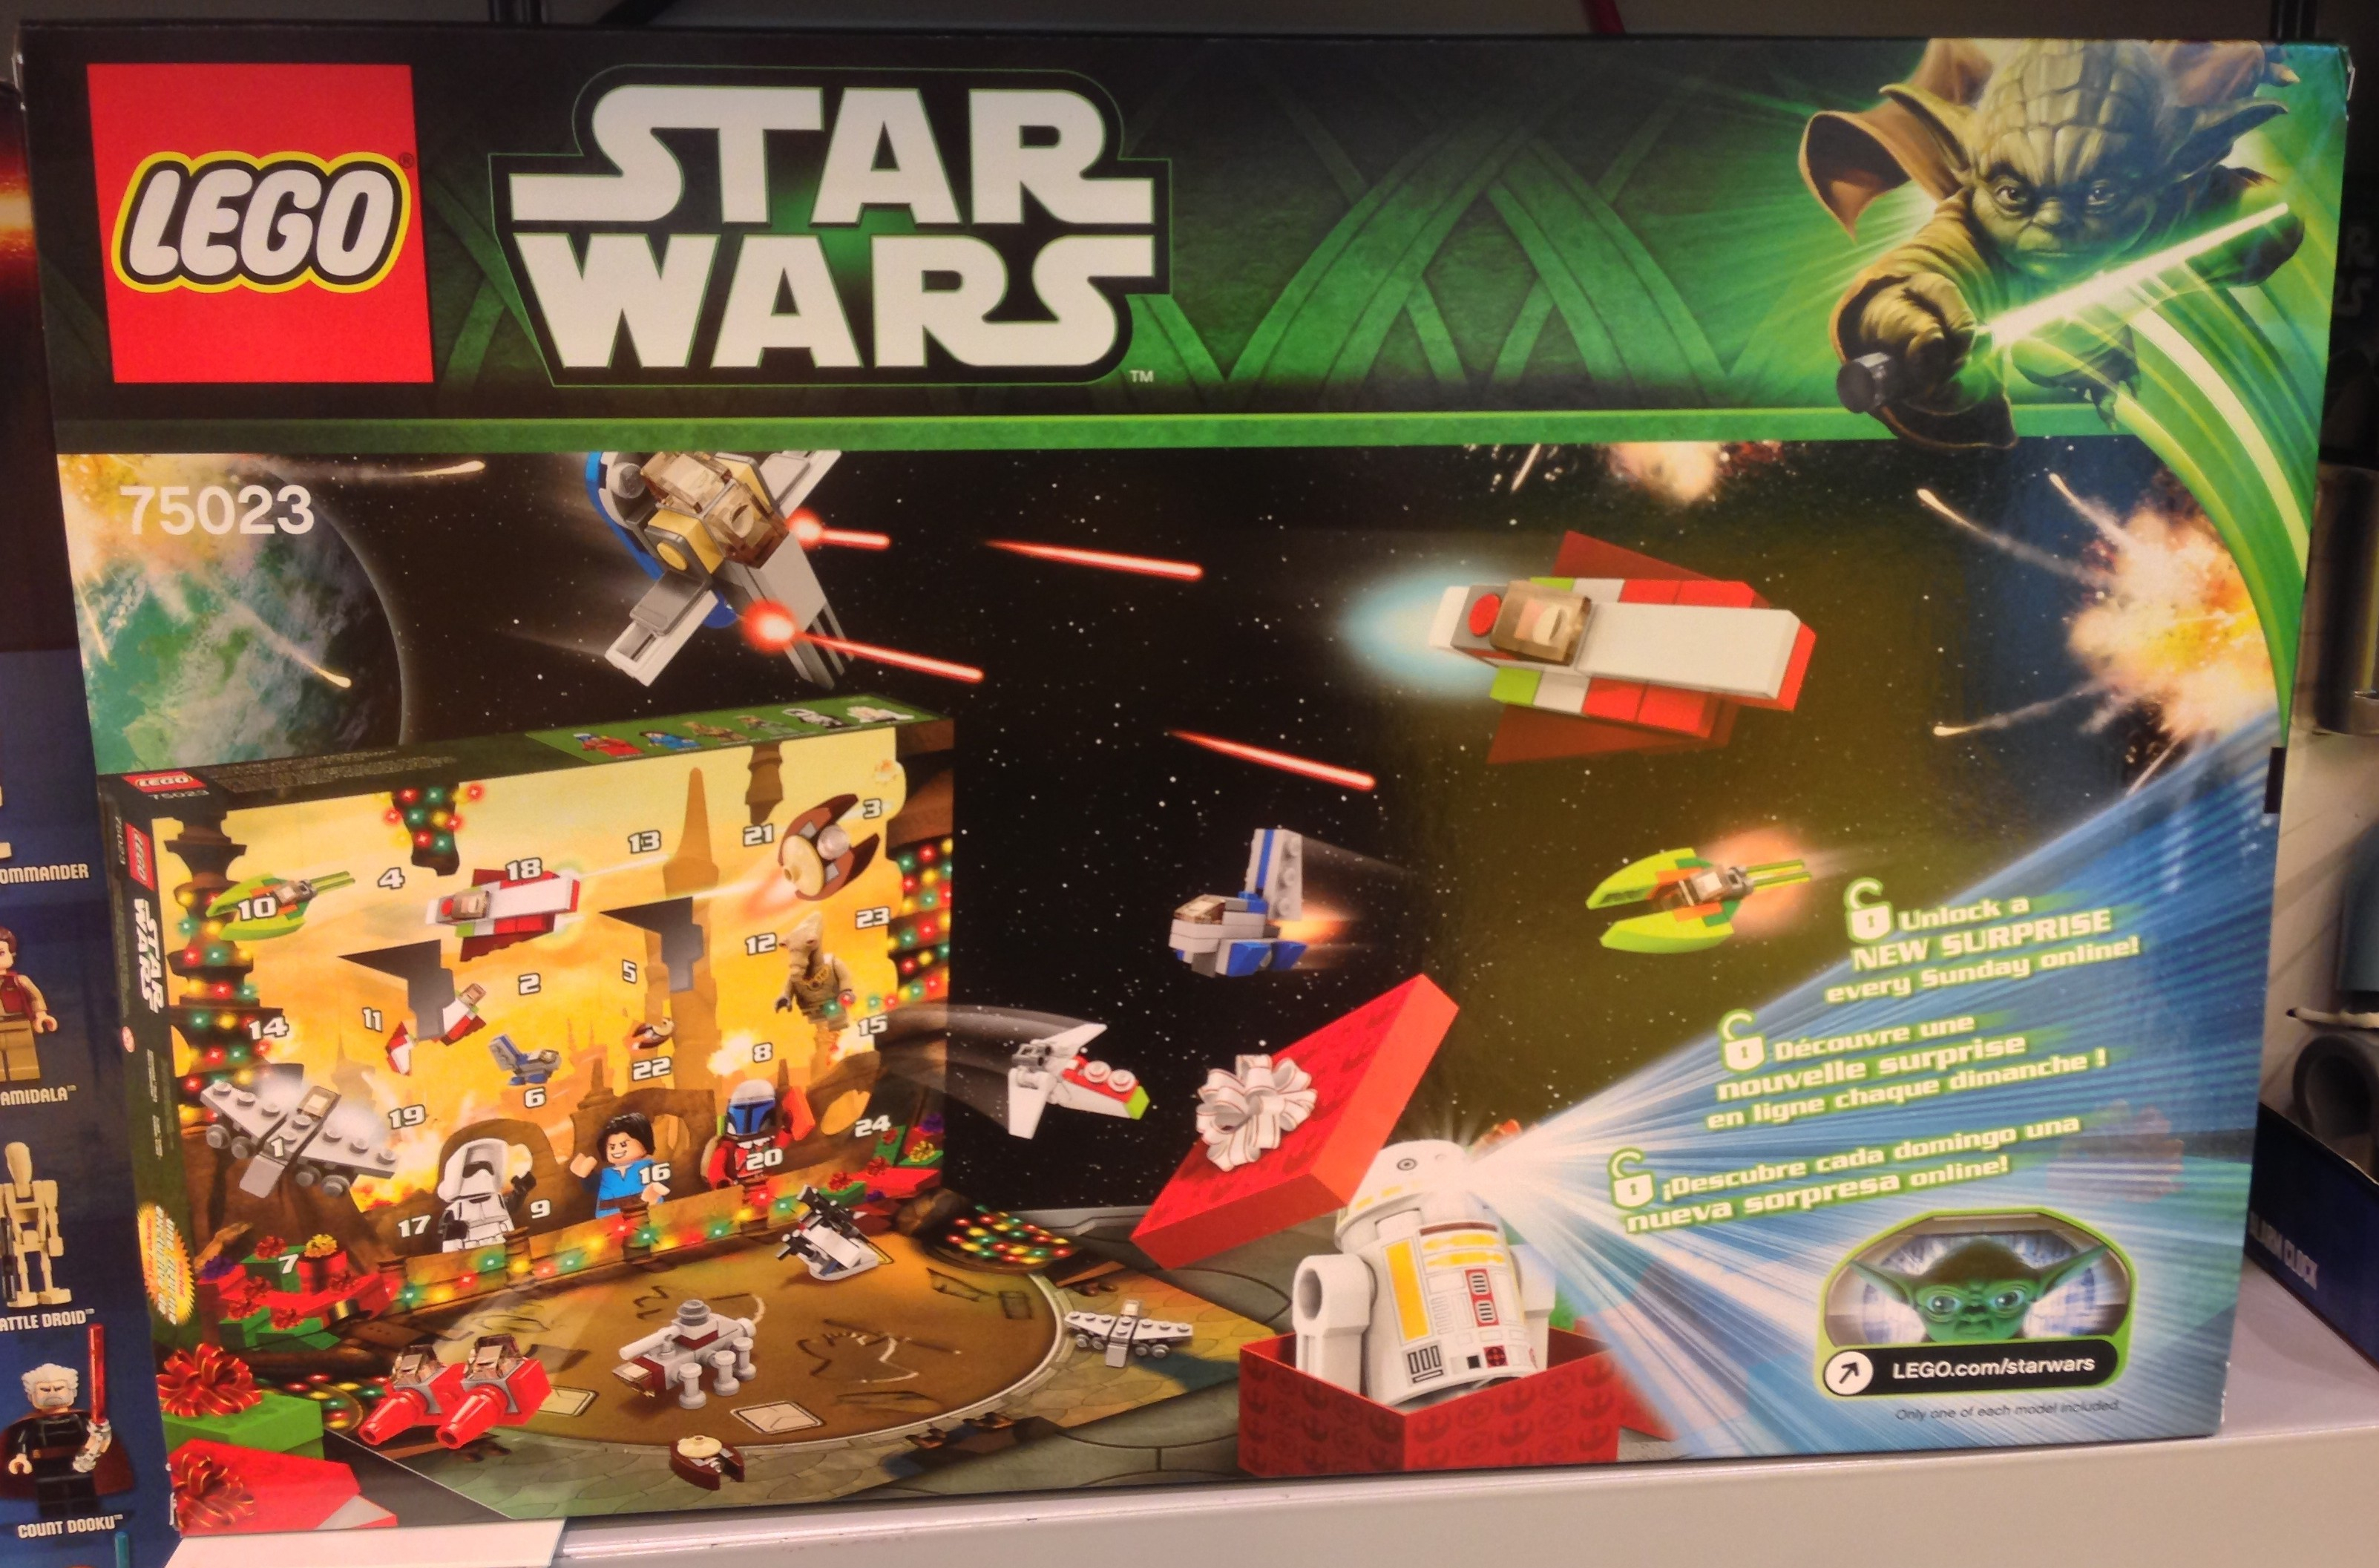 2013 Lego Star Wars Advent Calendar 75023 Released In Stores pertaining to Lego Star Wars Calendar 2013